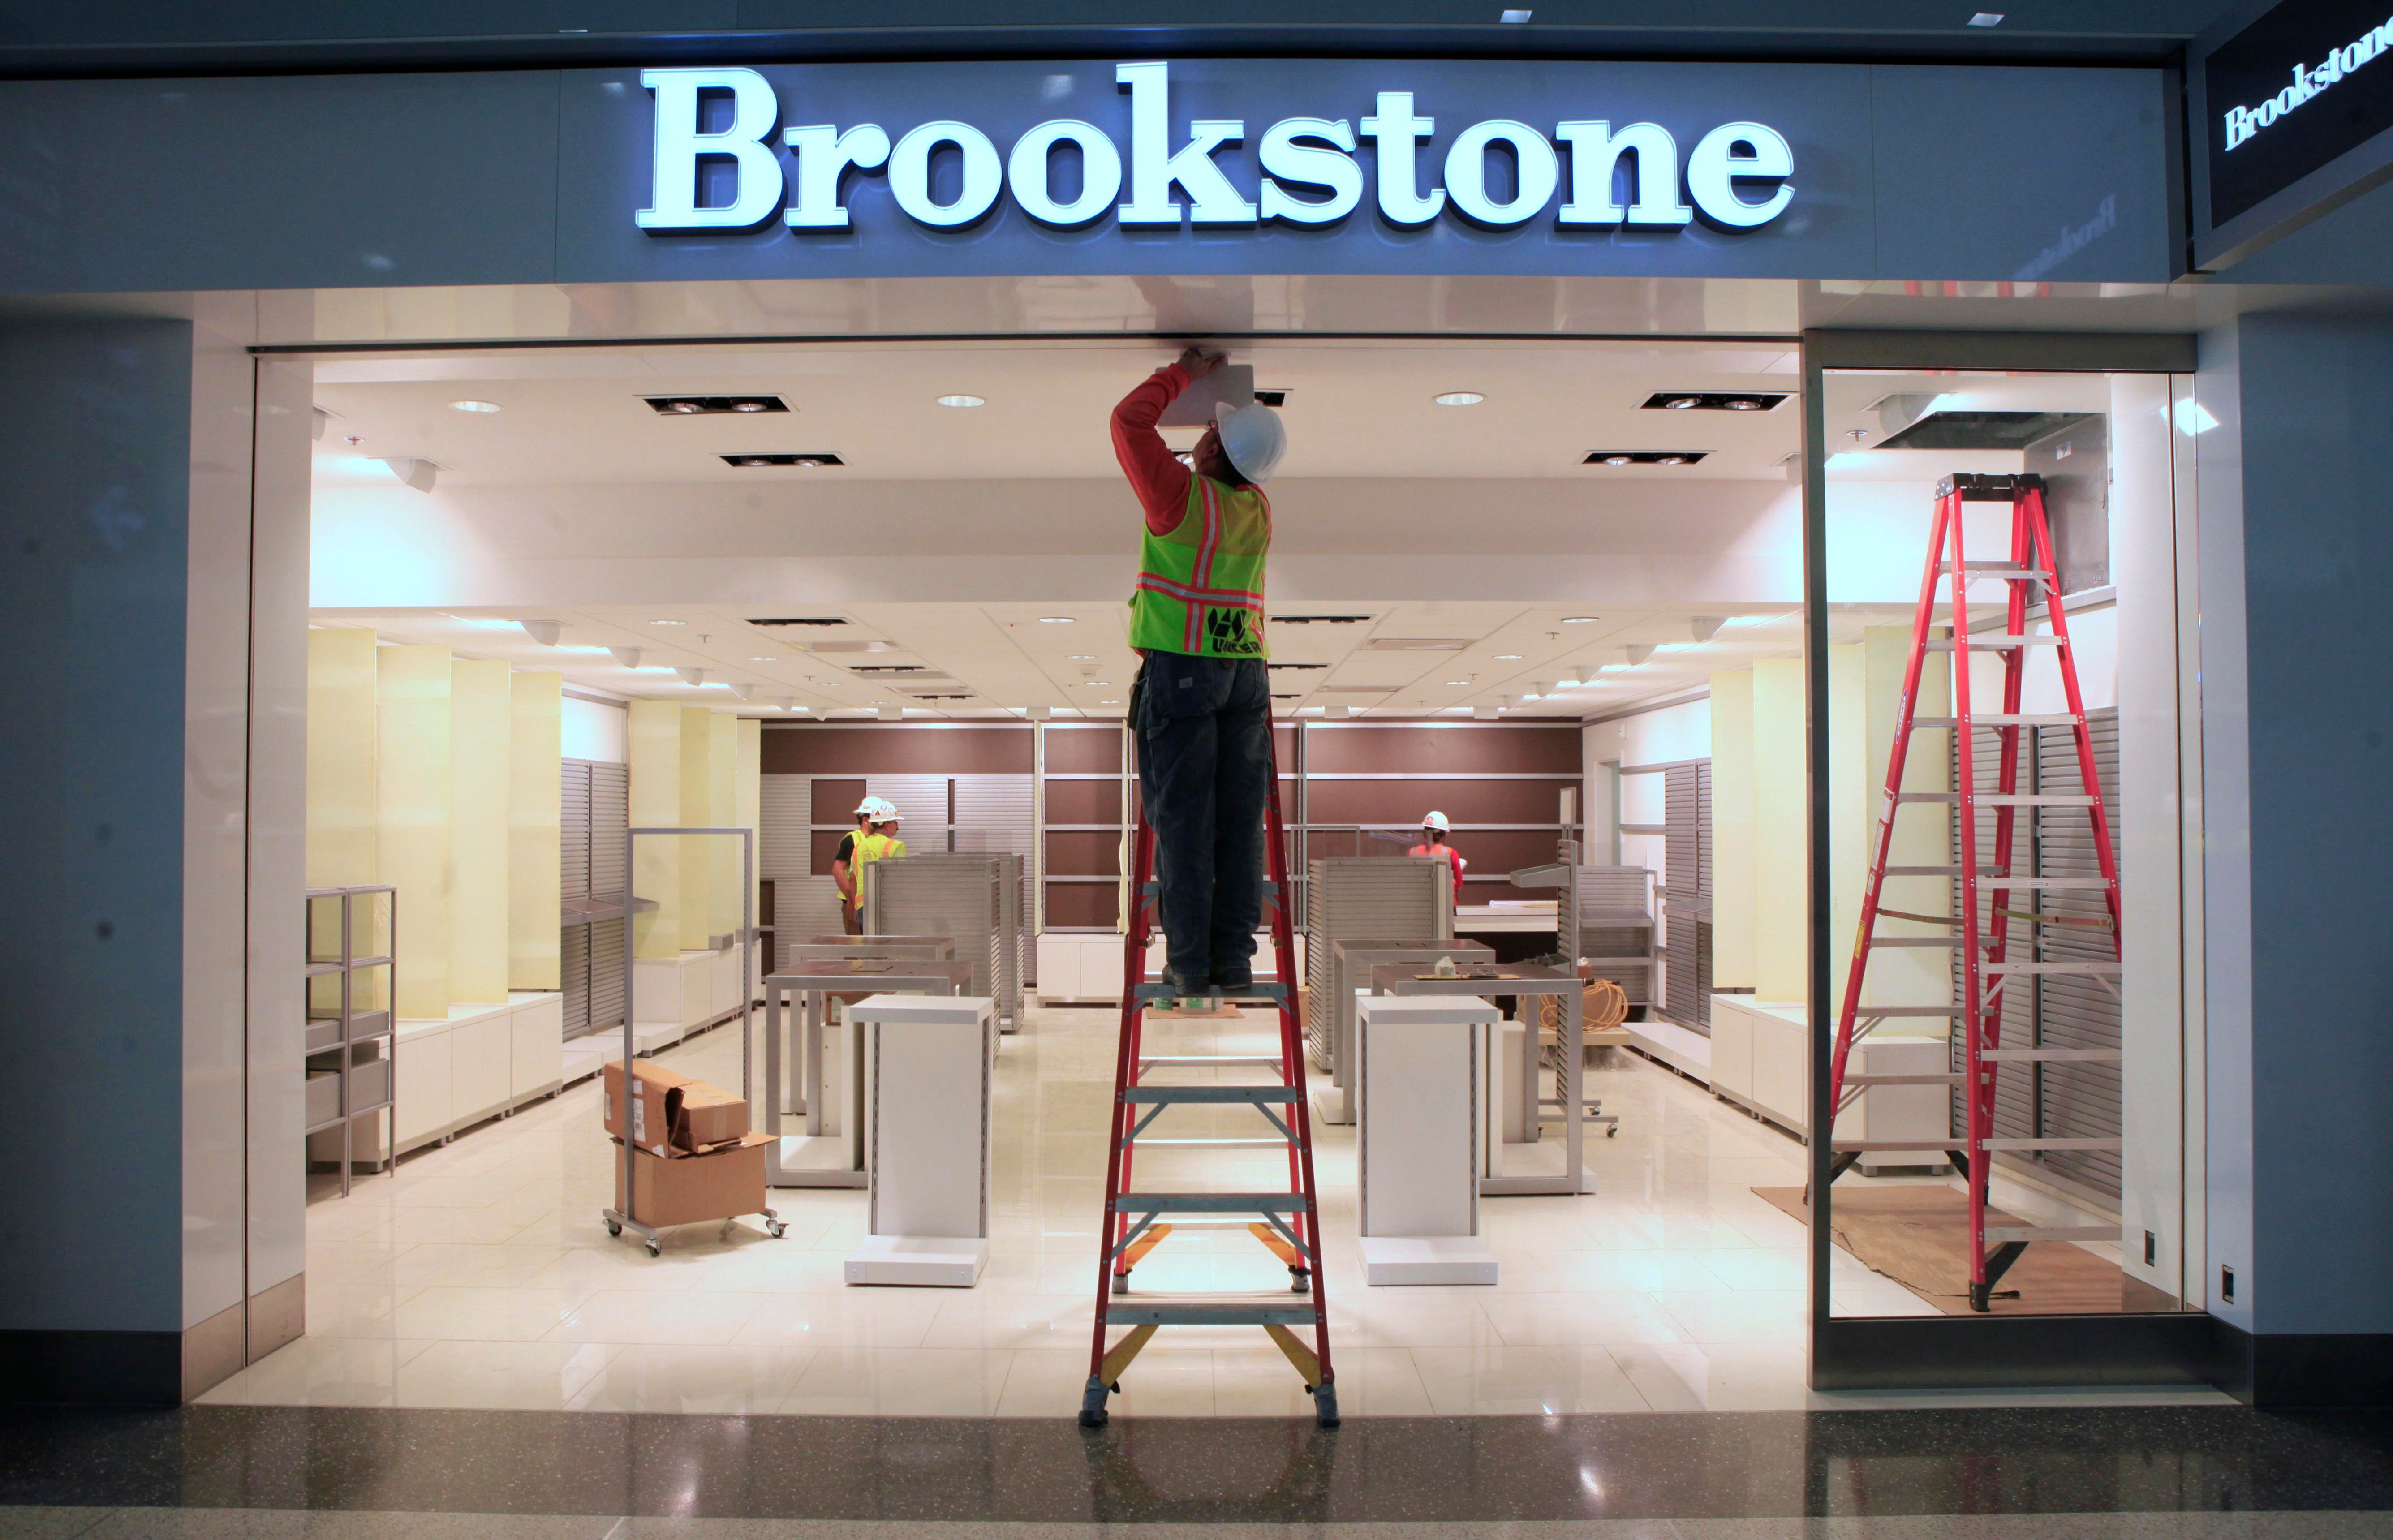 Work is done on a light fixture at the Brookstone shop at the new Terminal B at the Sacramento International Airport in Sacramento, Calif. The new $1 billion terminal, which is scheduled to open Thursday, Oct. 6, 2011 created 2,400 jobs during the 2 1/2 year construction project that officials say is the largest in Sacramento County's history, and is designed to expand the airport's capacity to 16 million passengers a yearSacramento Airport New Terminal, Sacramento, USA